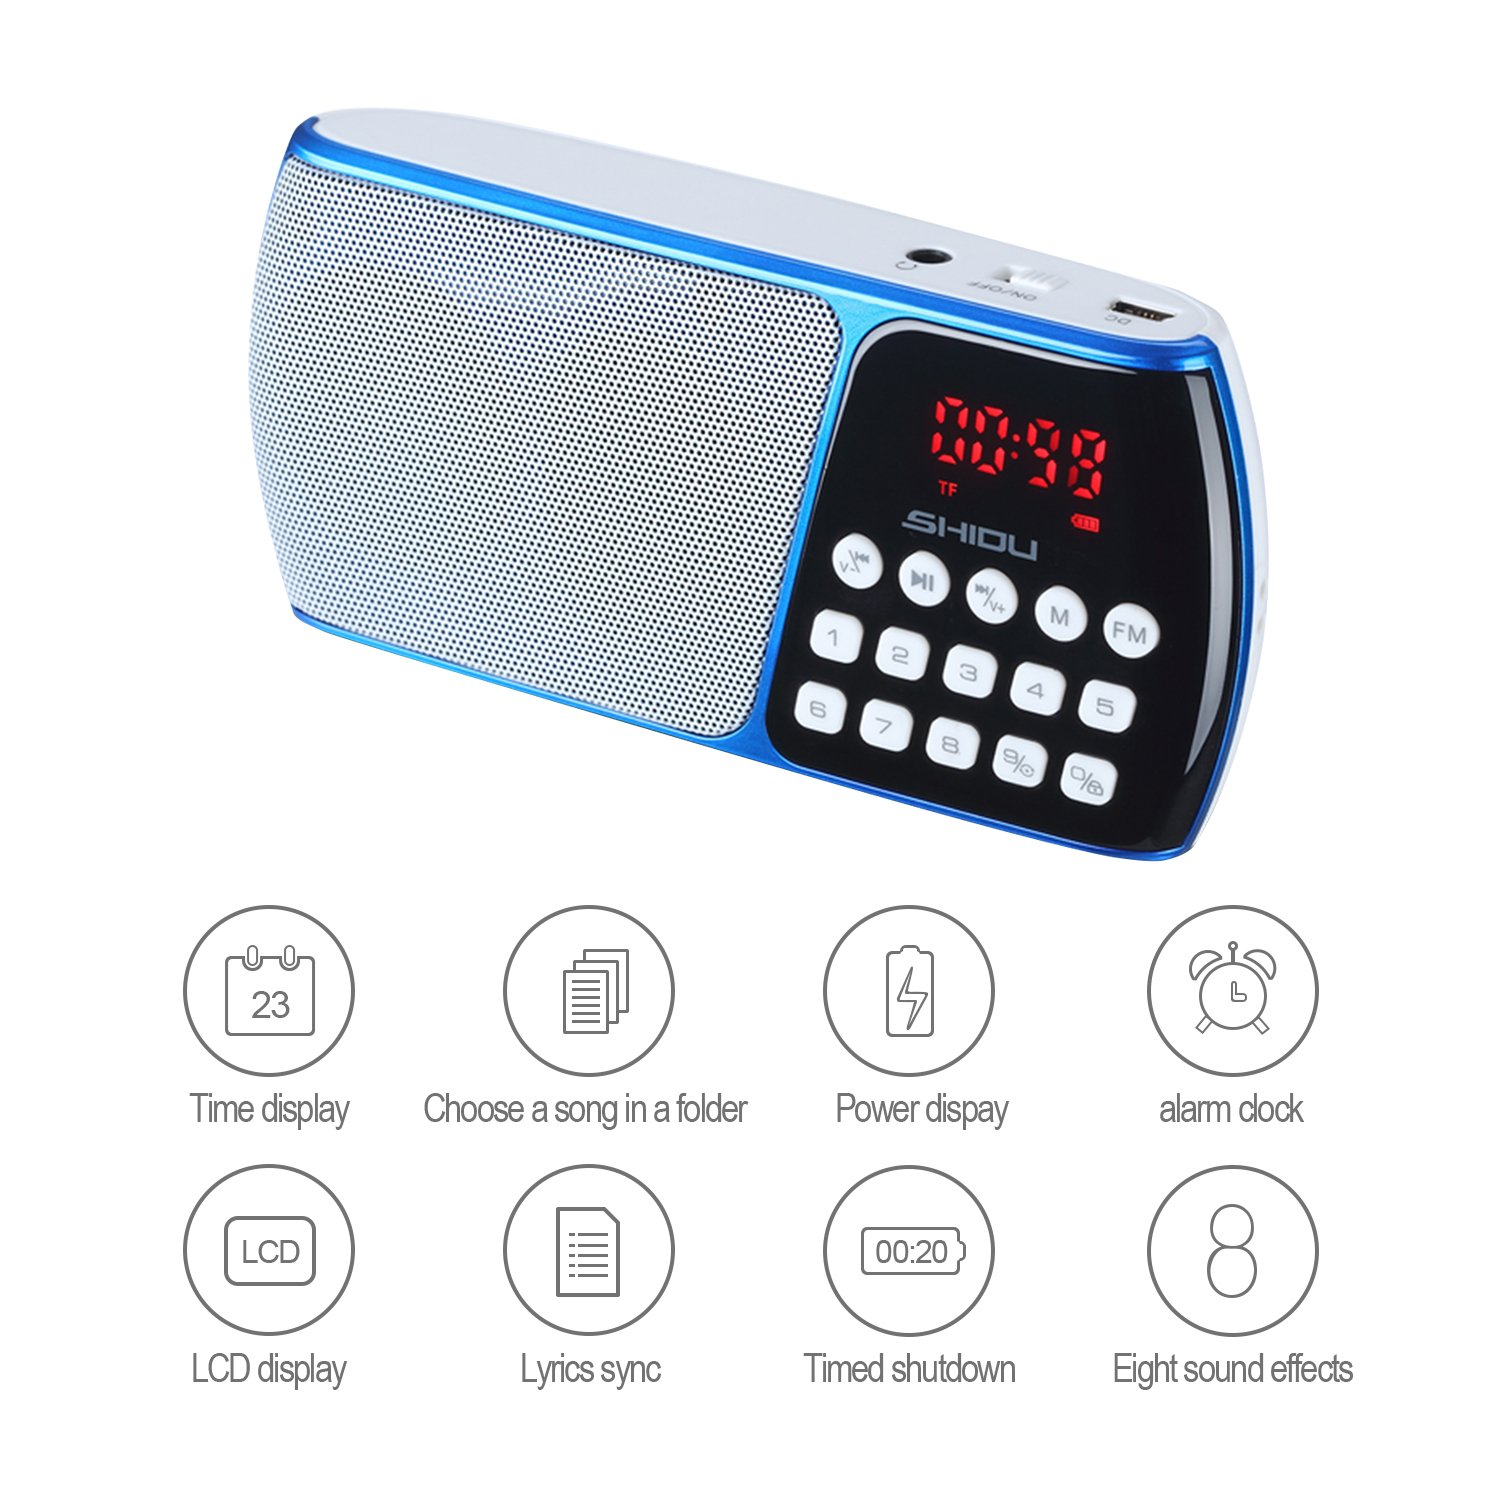 SHIDU SD-S158 Portable FM Radio with TF Card Port, Rechargeable Battery and LED Display